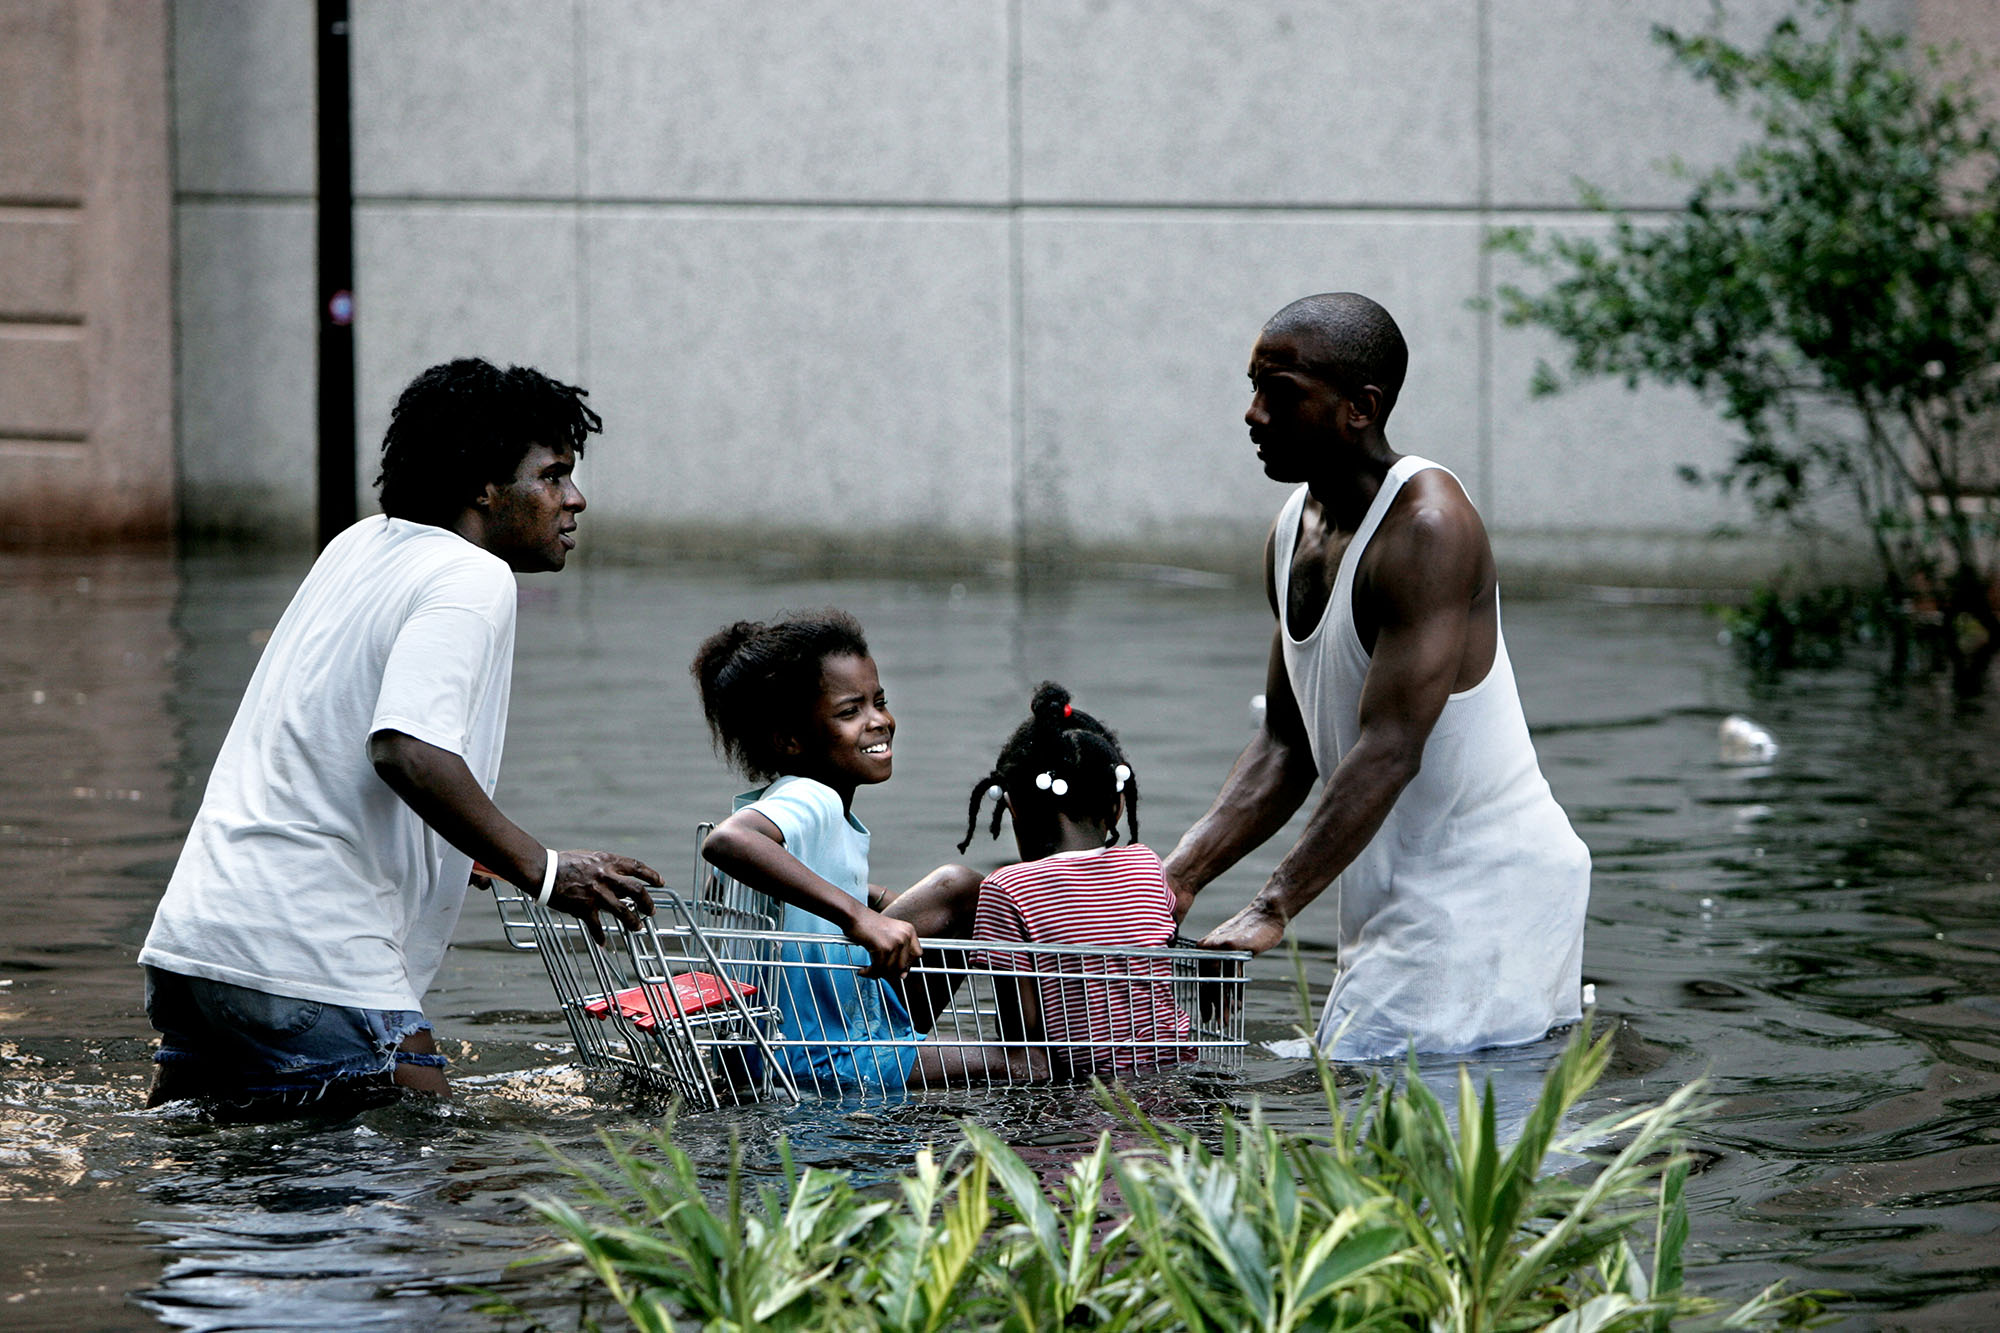 Hurricane Katrina has flooded 80% of New Orleans and this family are trying to reach the Superdome where many people had gathered to wait for help.